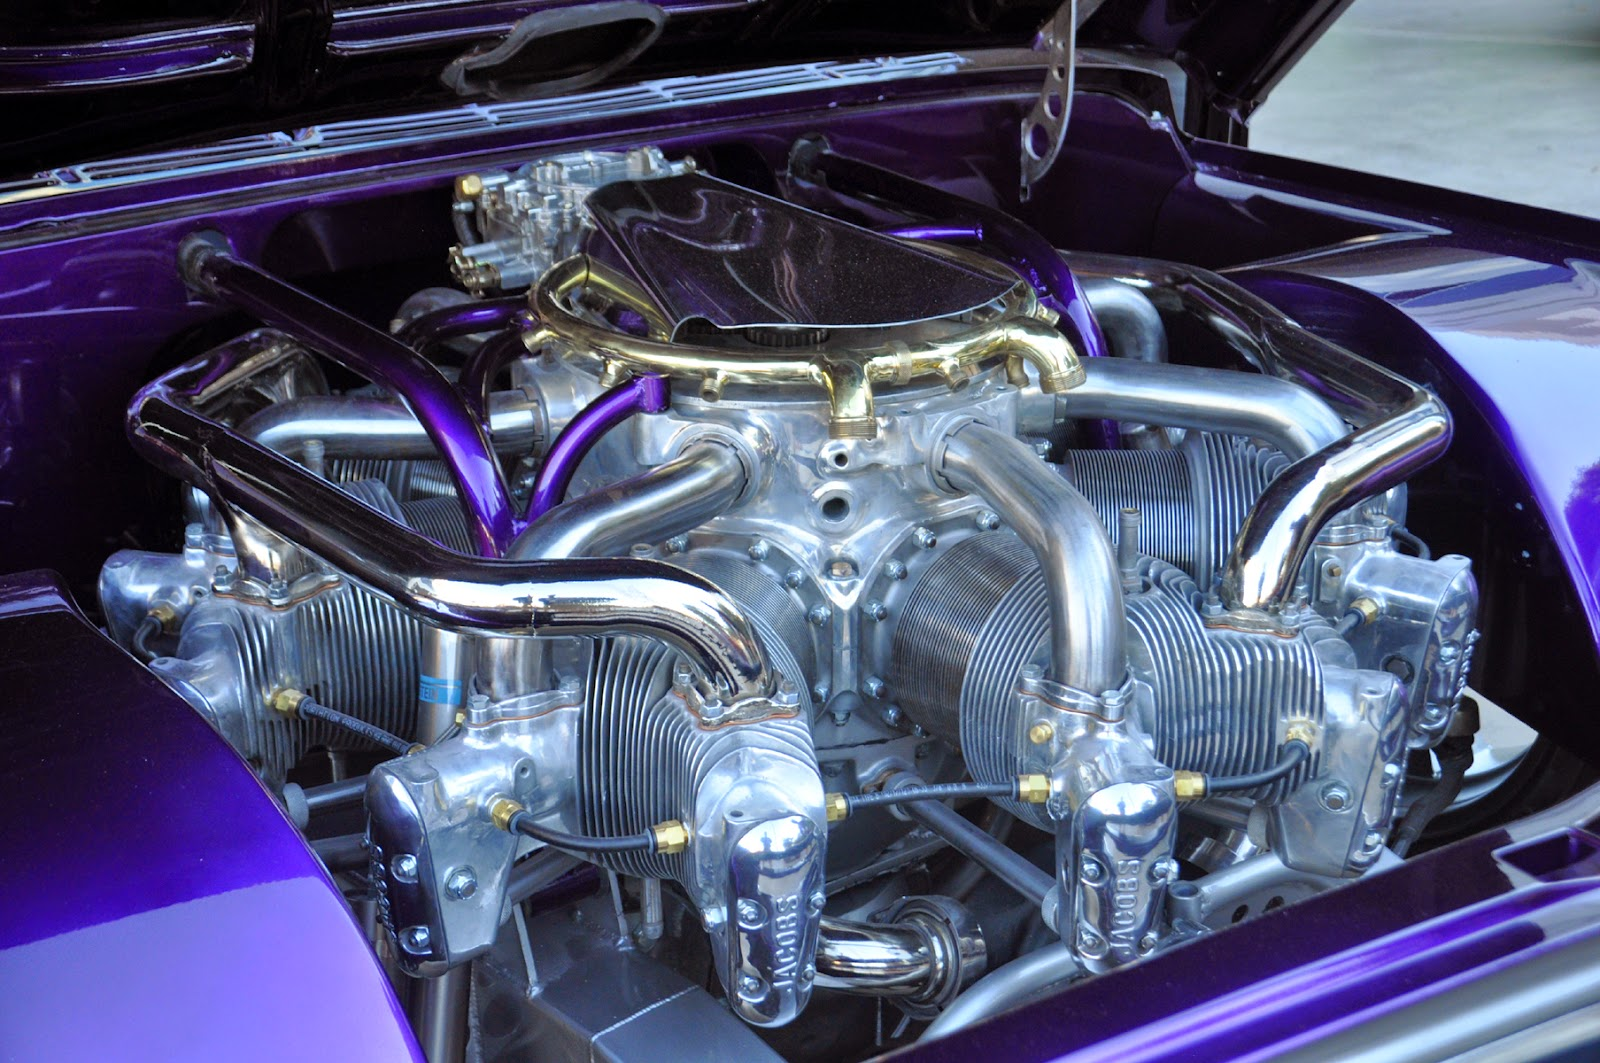 Just A Car Guy: the close ups of the radial engine C10 I